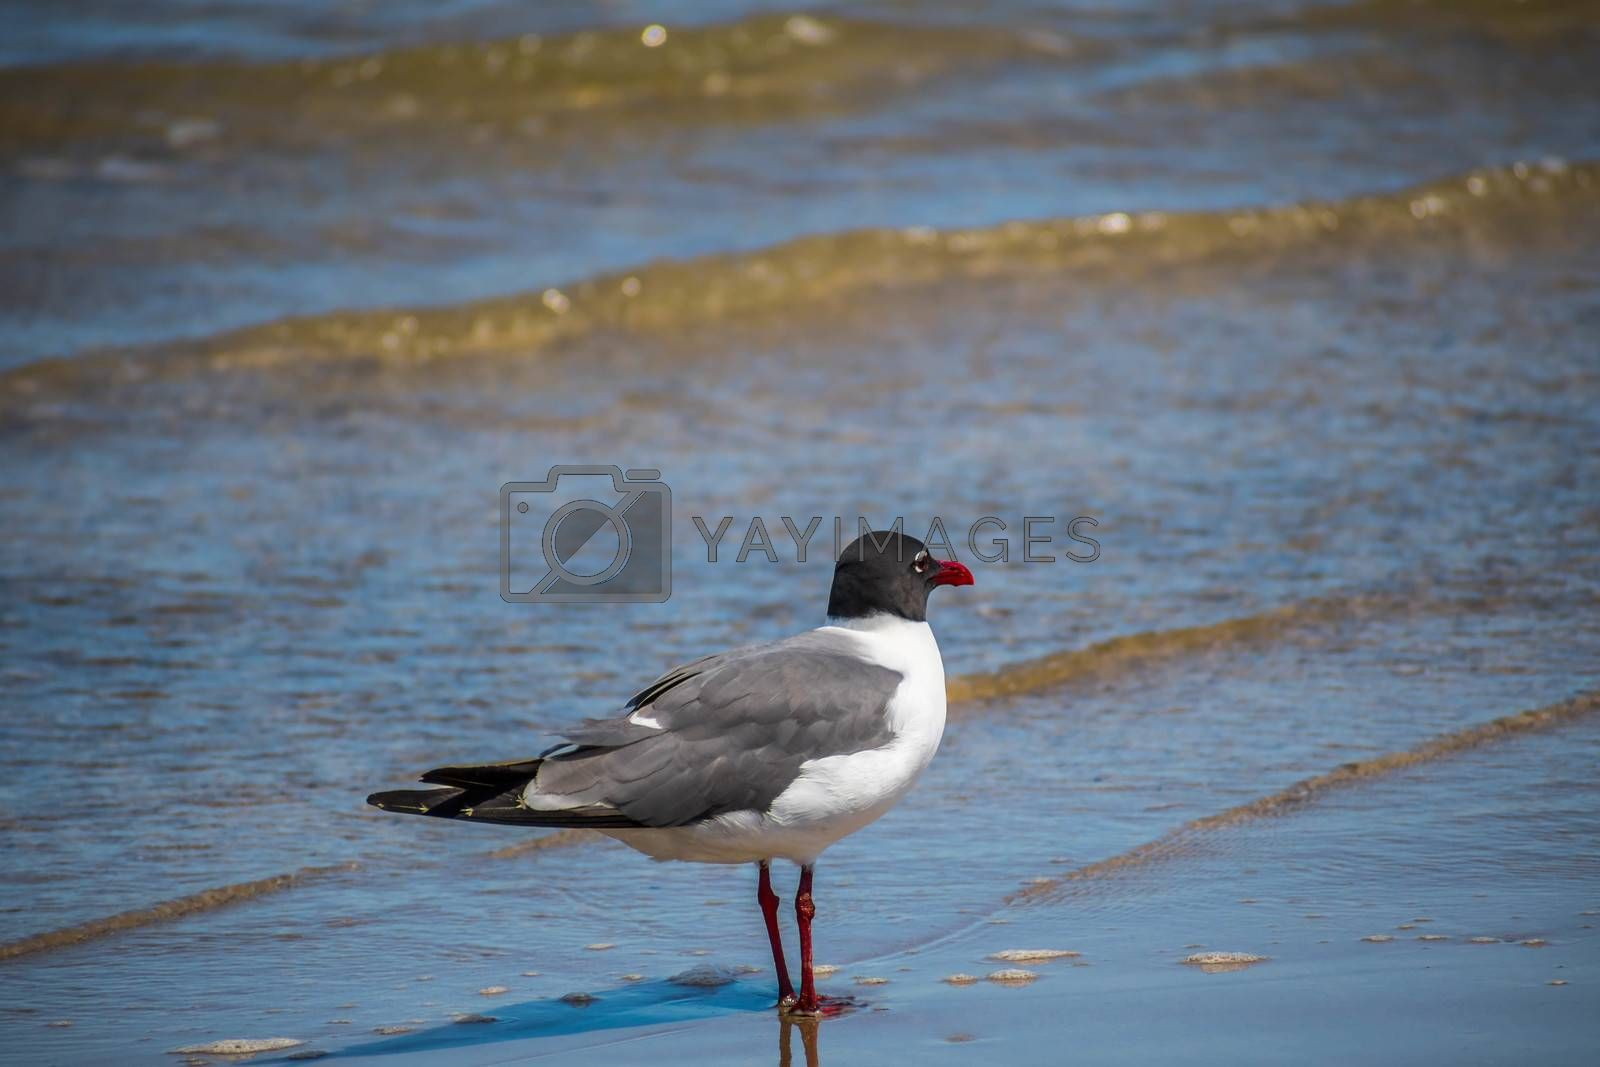 A relaxing seagull enjoying the view around the coastline of the seashore